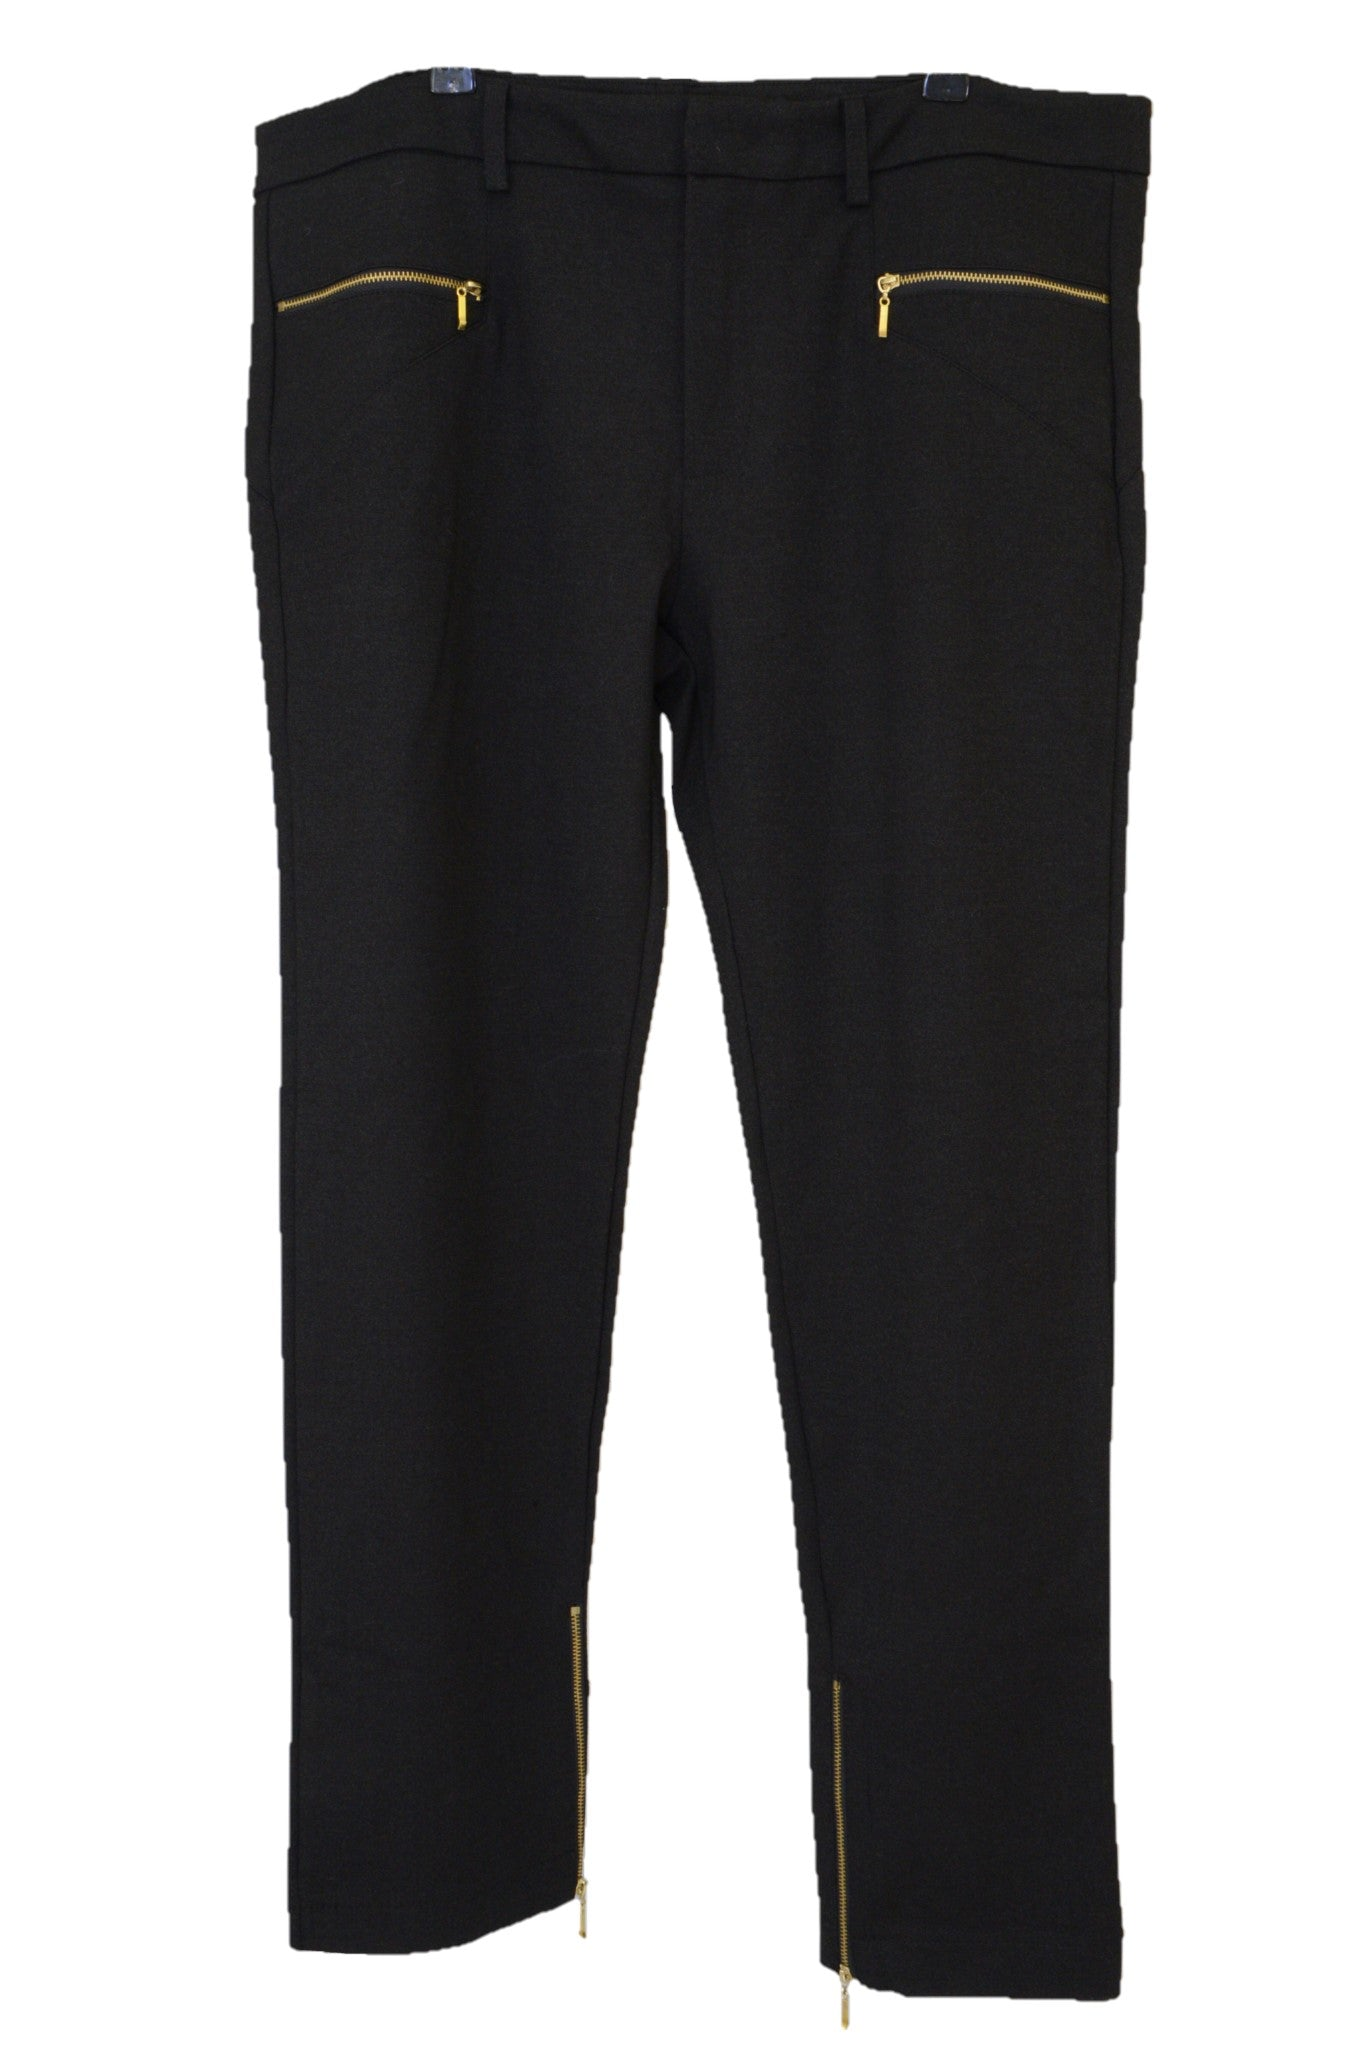 Harvey the Label black Zeppelin stretch pants